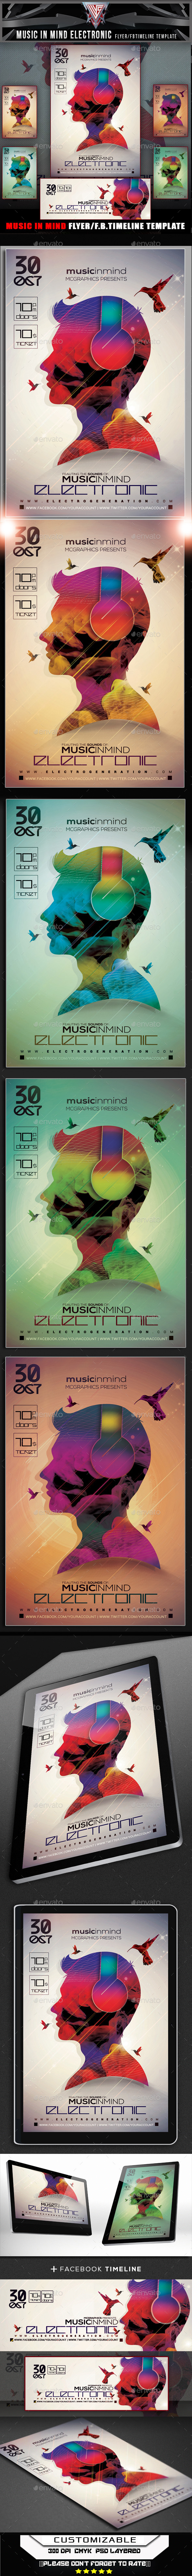 GraphicRiver Music In Mind Electronic Flyer Template 11955736